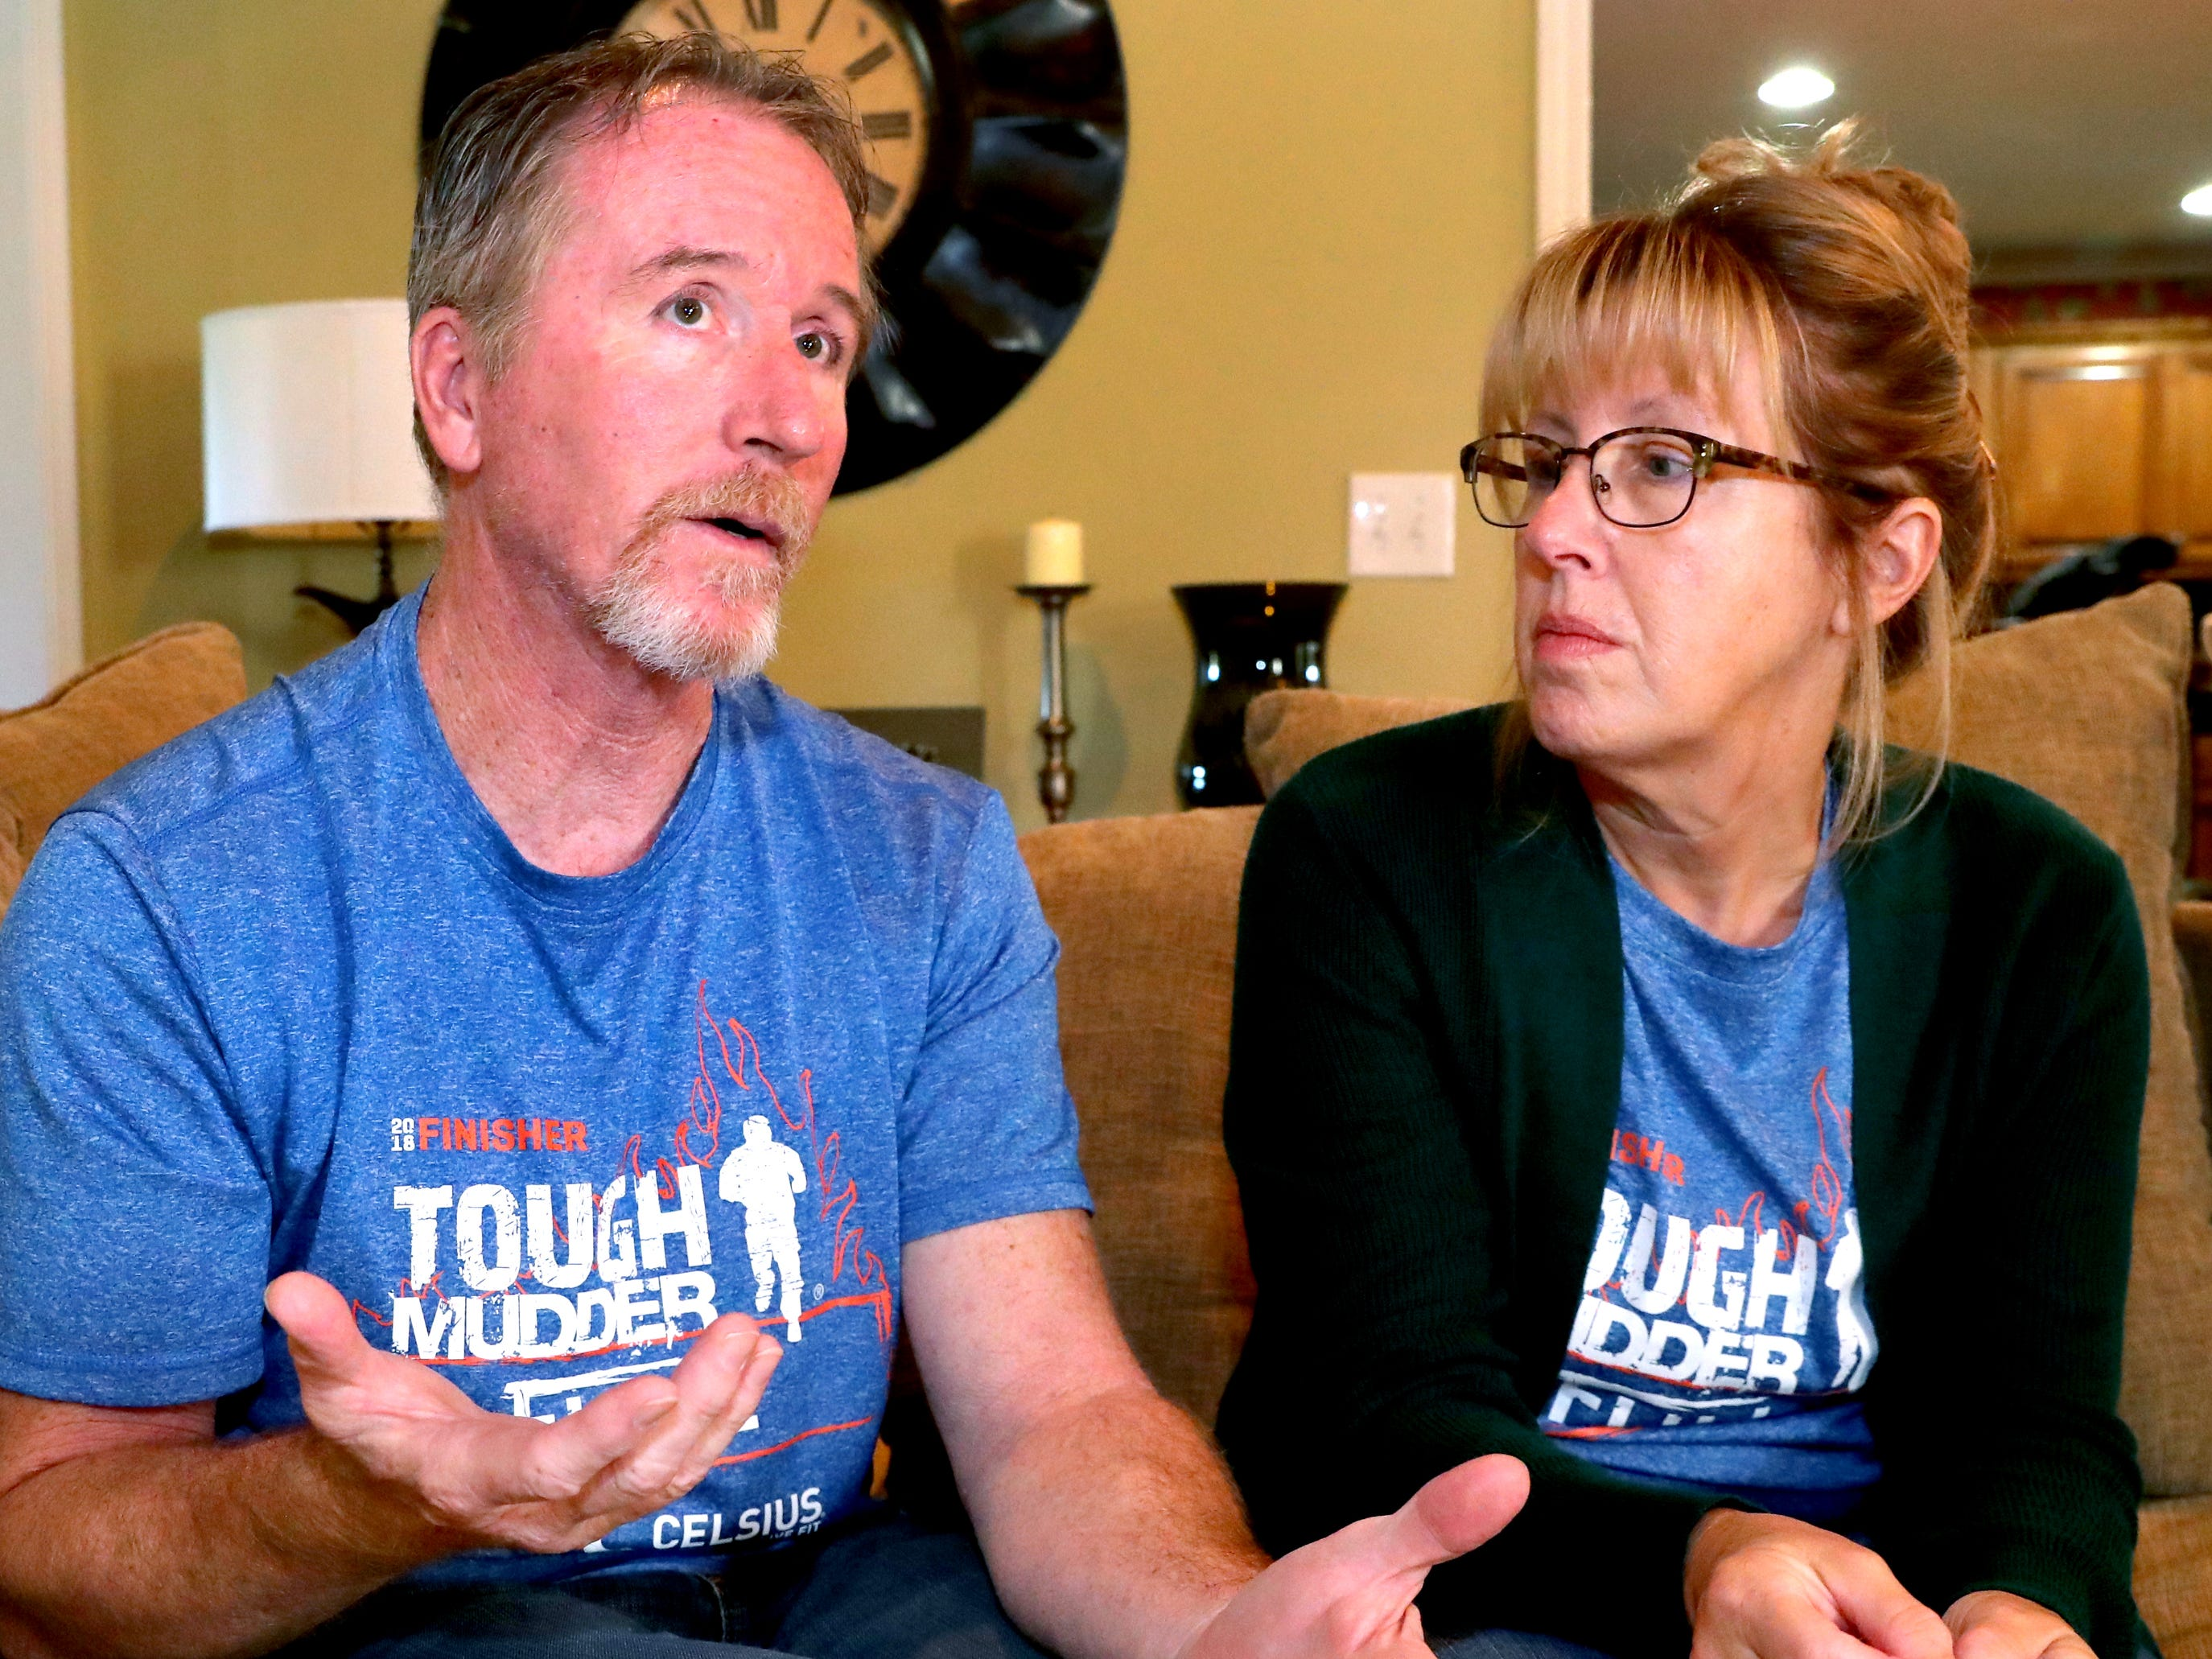 Bruce Ippel, left, talks about his life after being diagnosed with MS and training and competing in tough mudders events, as his wife Tina Ippel, right listens to his story, on Wednesday, Oct. 24, 2018.